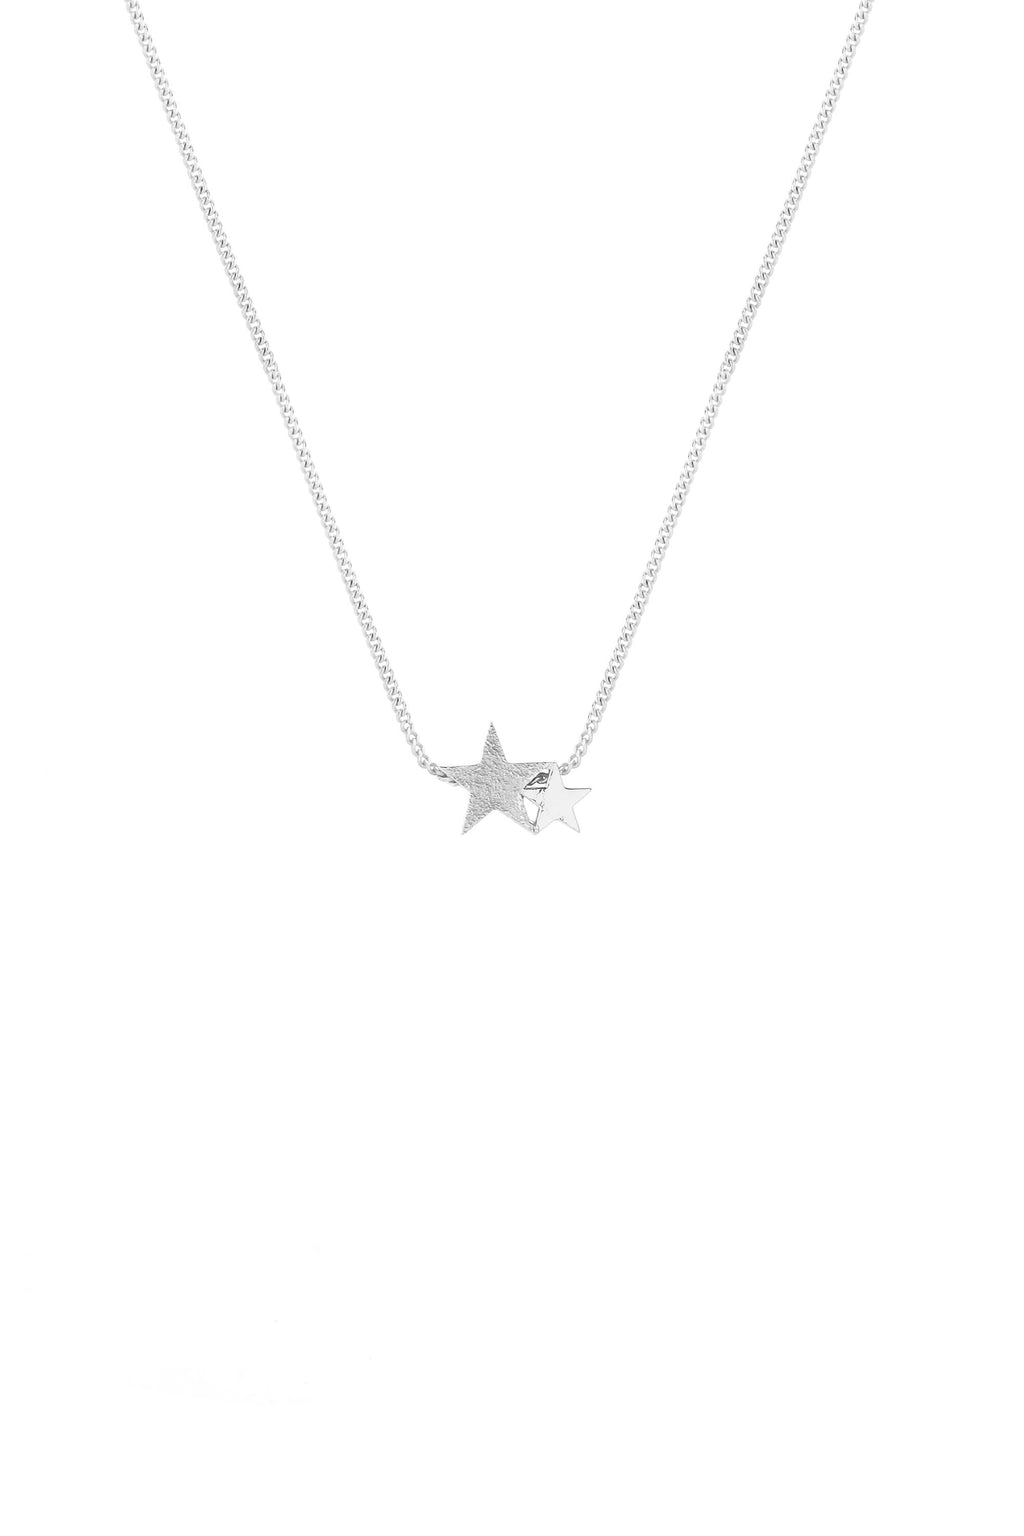 Starlight Necklace Silver